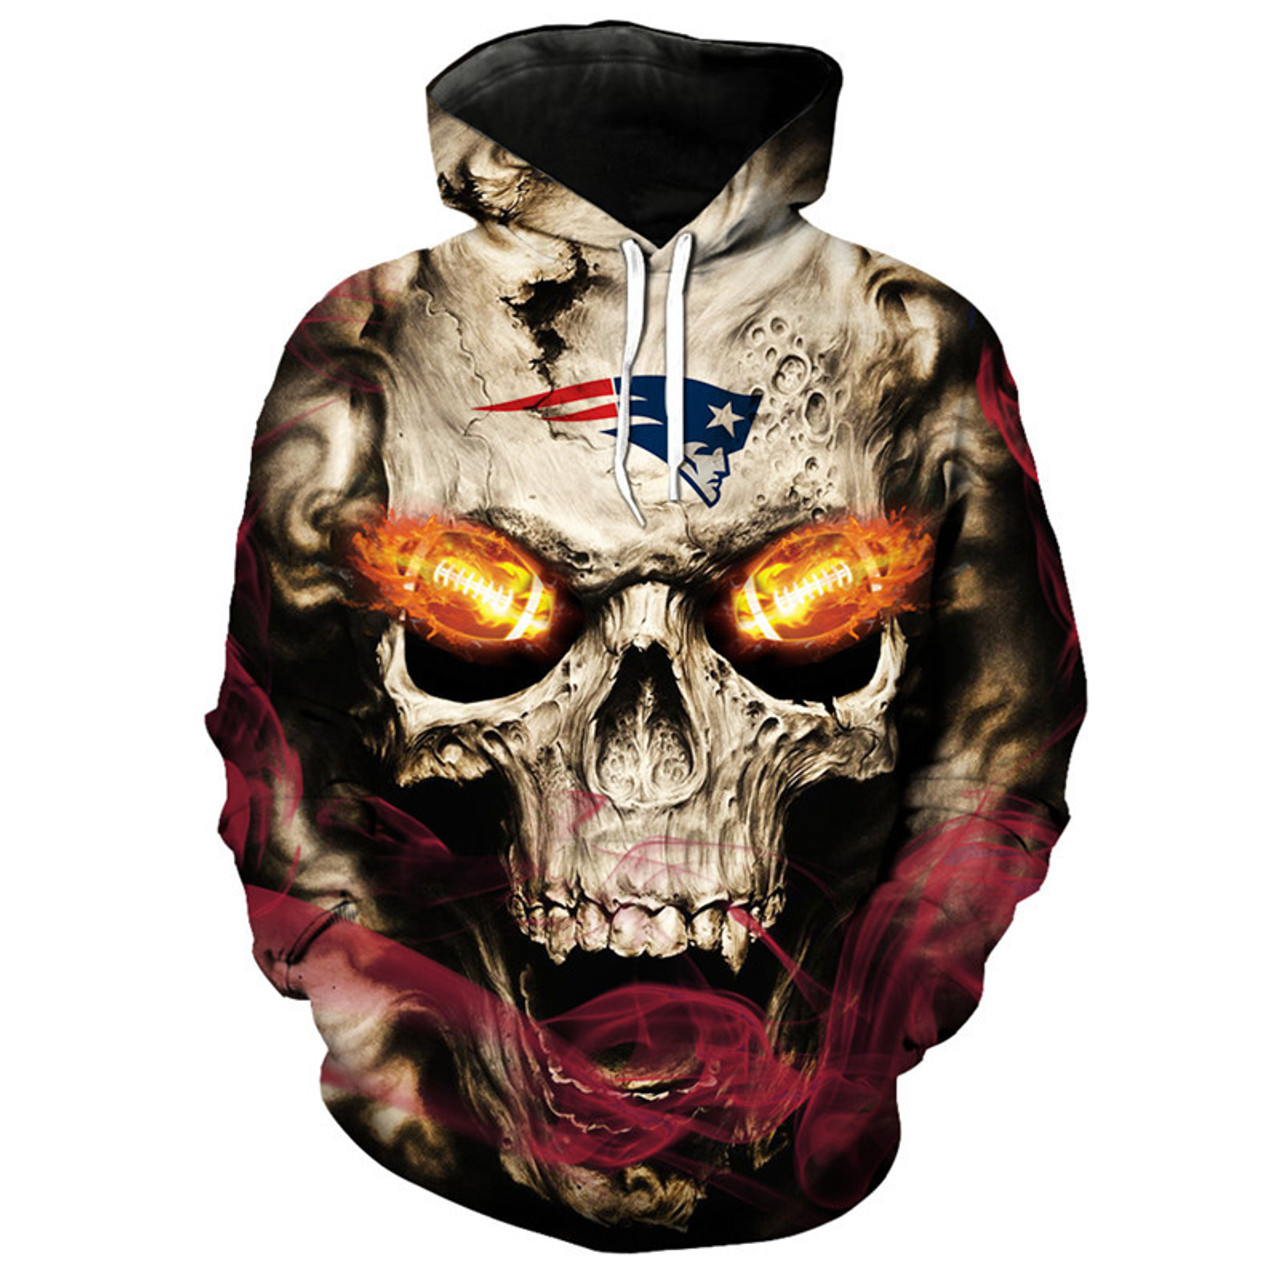 **(OFFICIAL-N.F.L.NEW-ENGLAND-PATRIOTS-LOGO/3D-NEON-SKULL & NEW-ENGLAND-PATRIOTS-FOOTBALL-FIRE-ON-EYES,PREMIUM-3D-GRAPHIC-PRINTED/DOUBLE-SIDED-WARM-PULLOVER-N.F.L.PATRIOTS-TEAM-COLORED-HOODIES)**